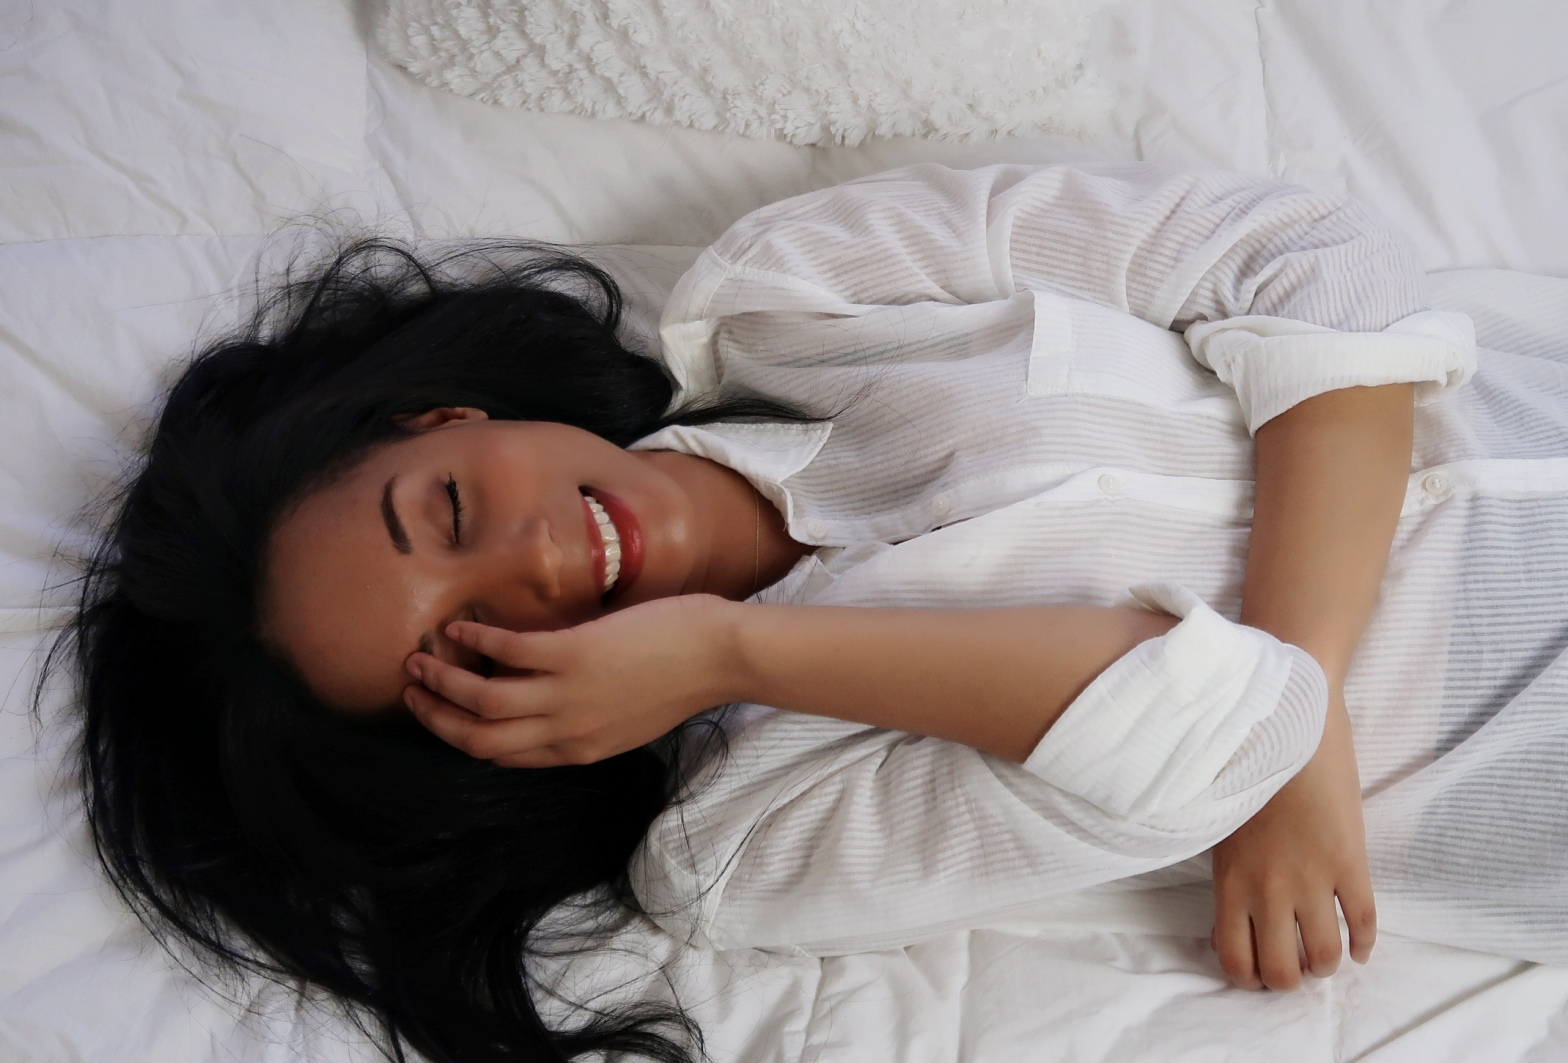 Wonan laughing on bed